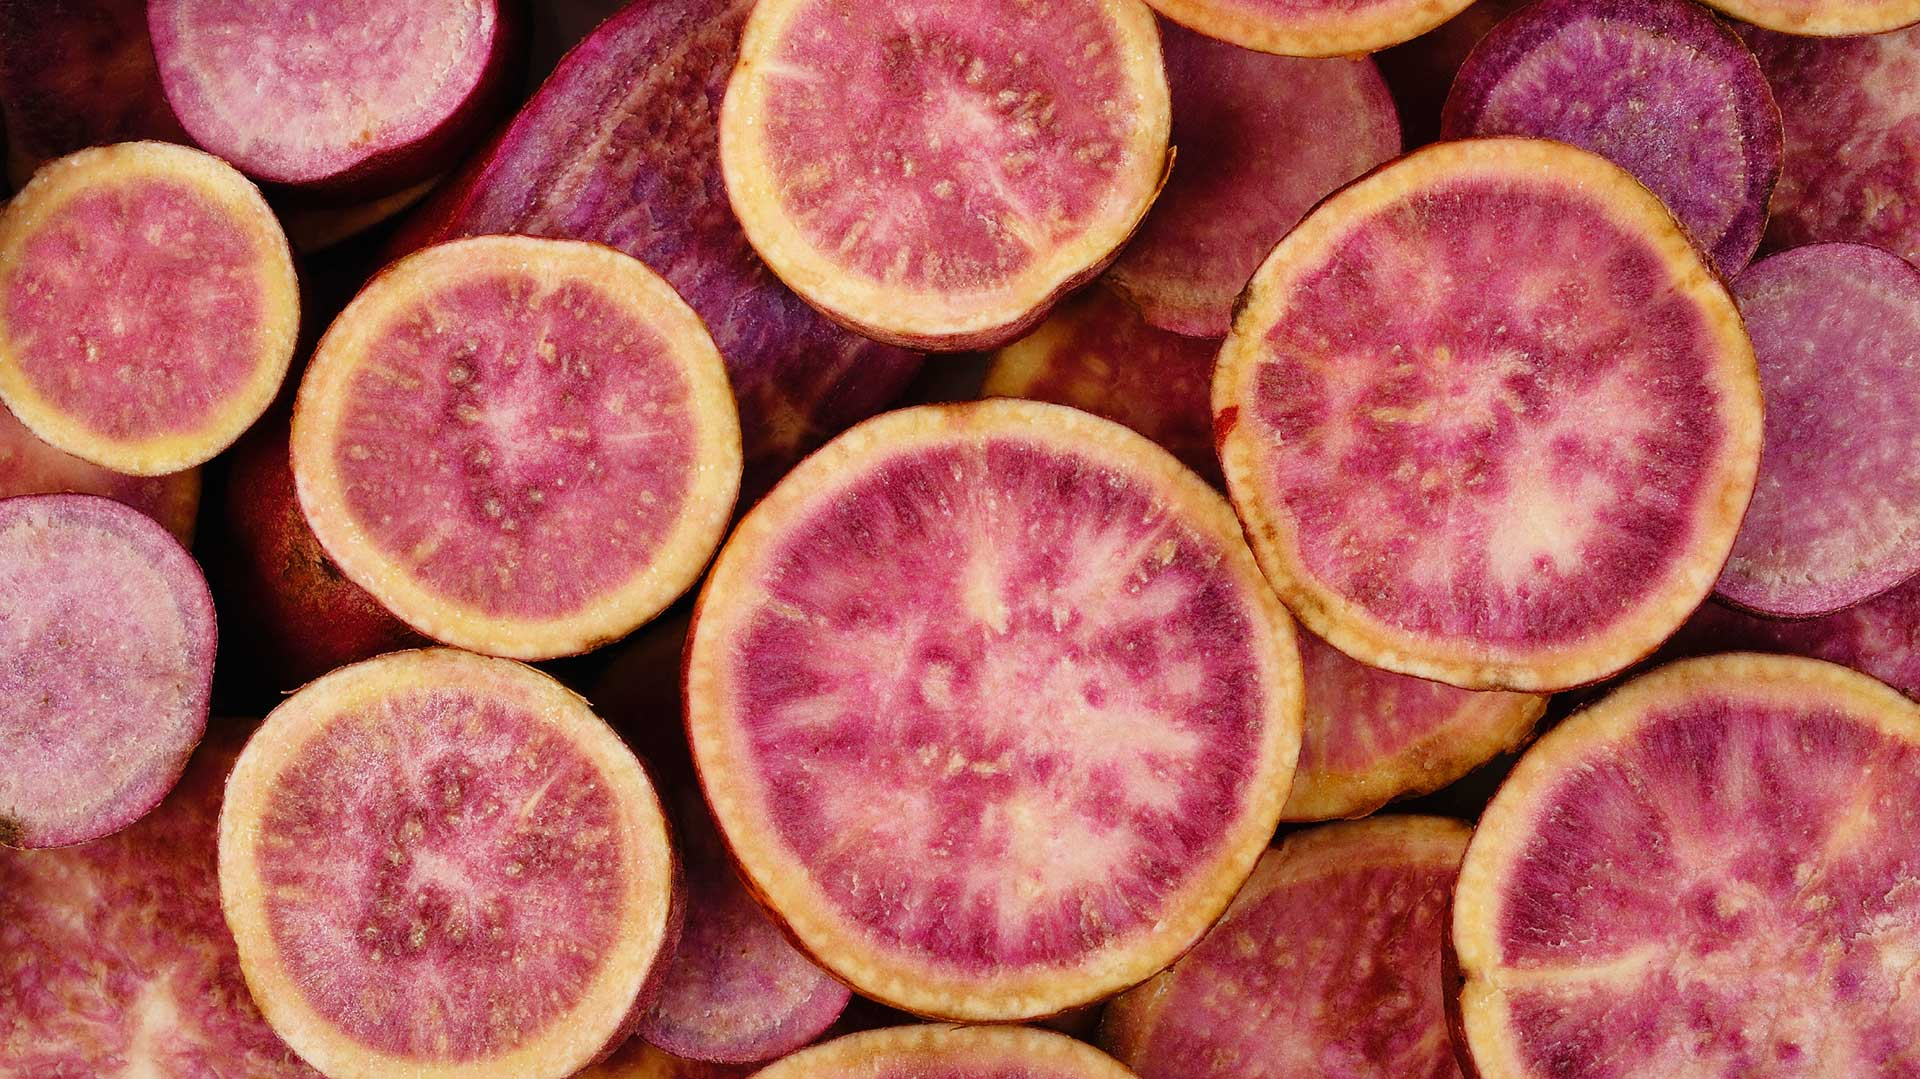 are purple sweet potatoes healthier